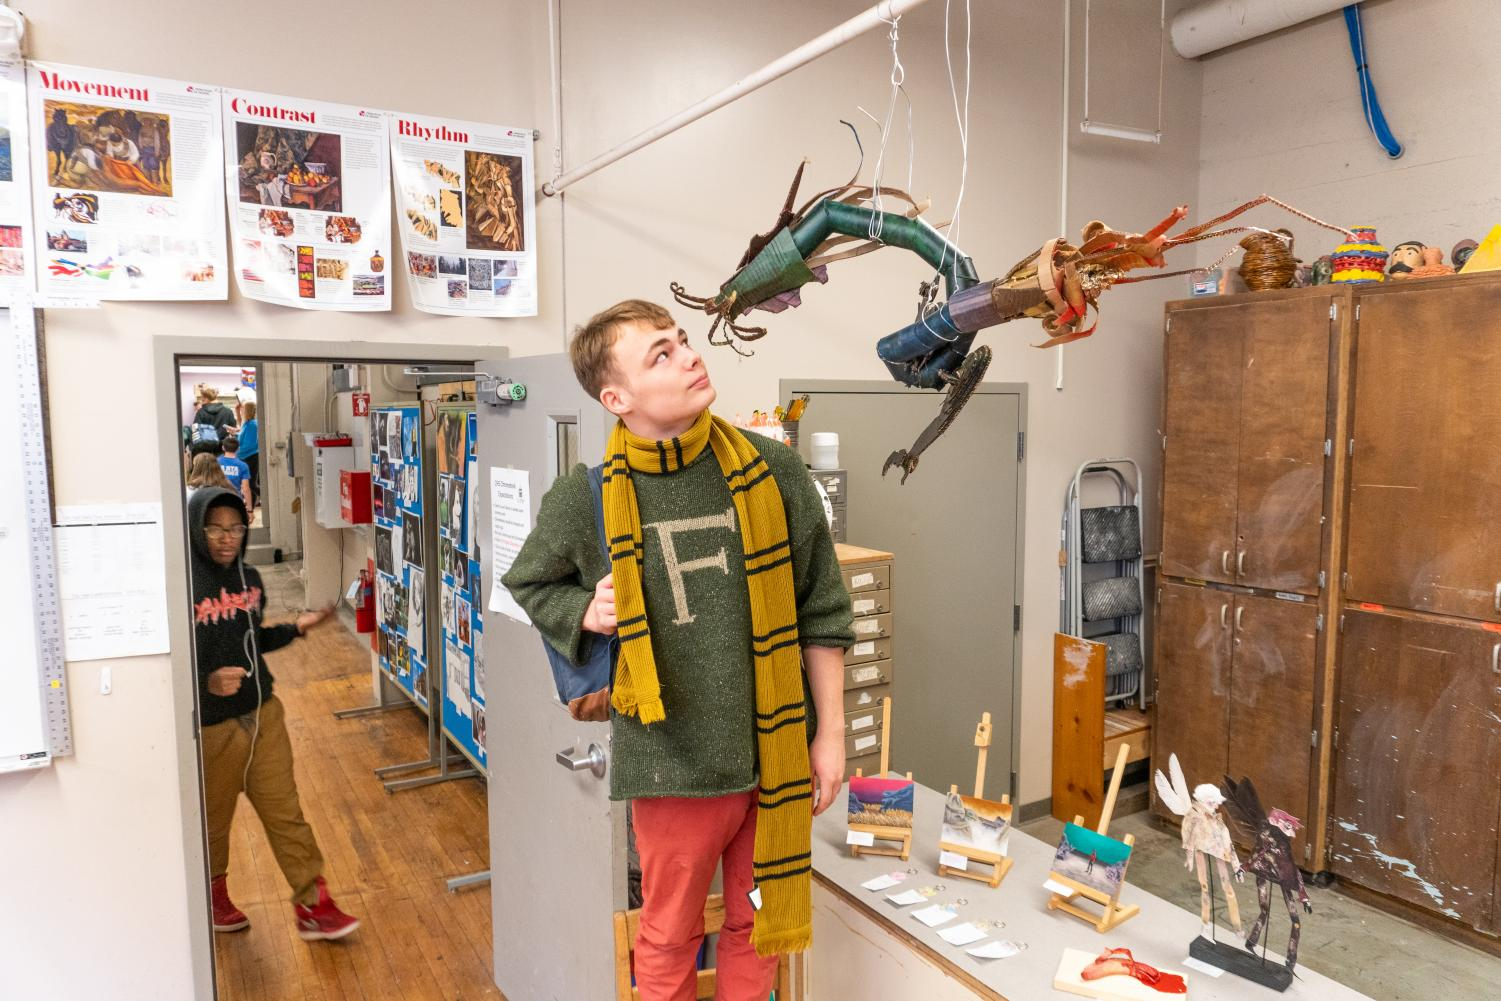 Finnegan Shelton '20 stands next to his dragon sculpture.